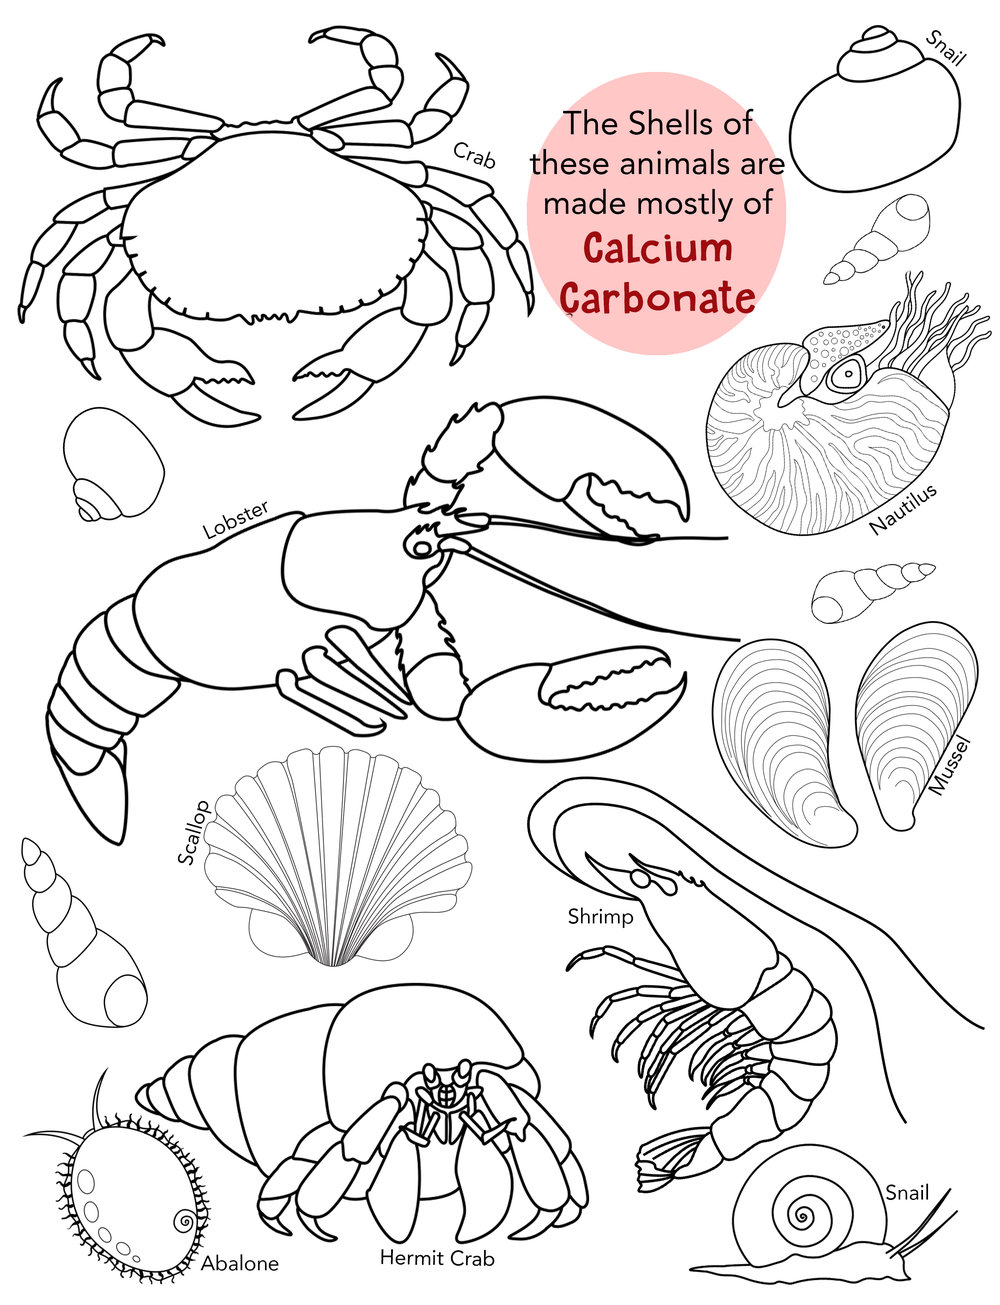 - One page (out of 45) from my Activity Book created with Stanford's Hopkins Marine Lab and the Monterey Bay Aquarium Research Institute. Once the book is fully available to the public I will update information on how to acquire it here.